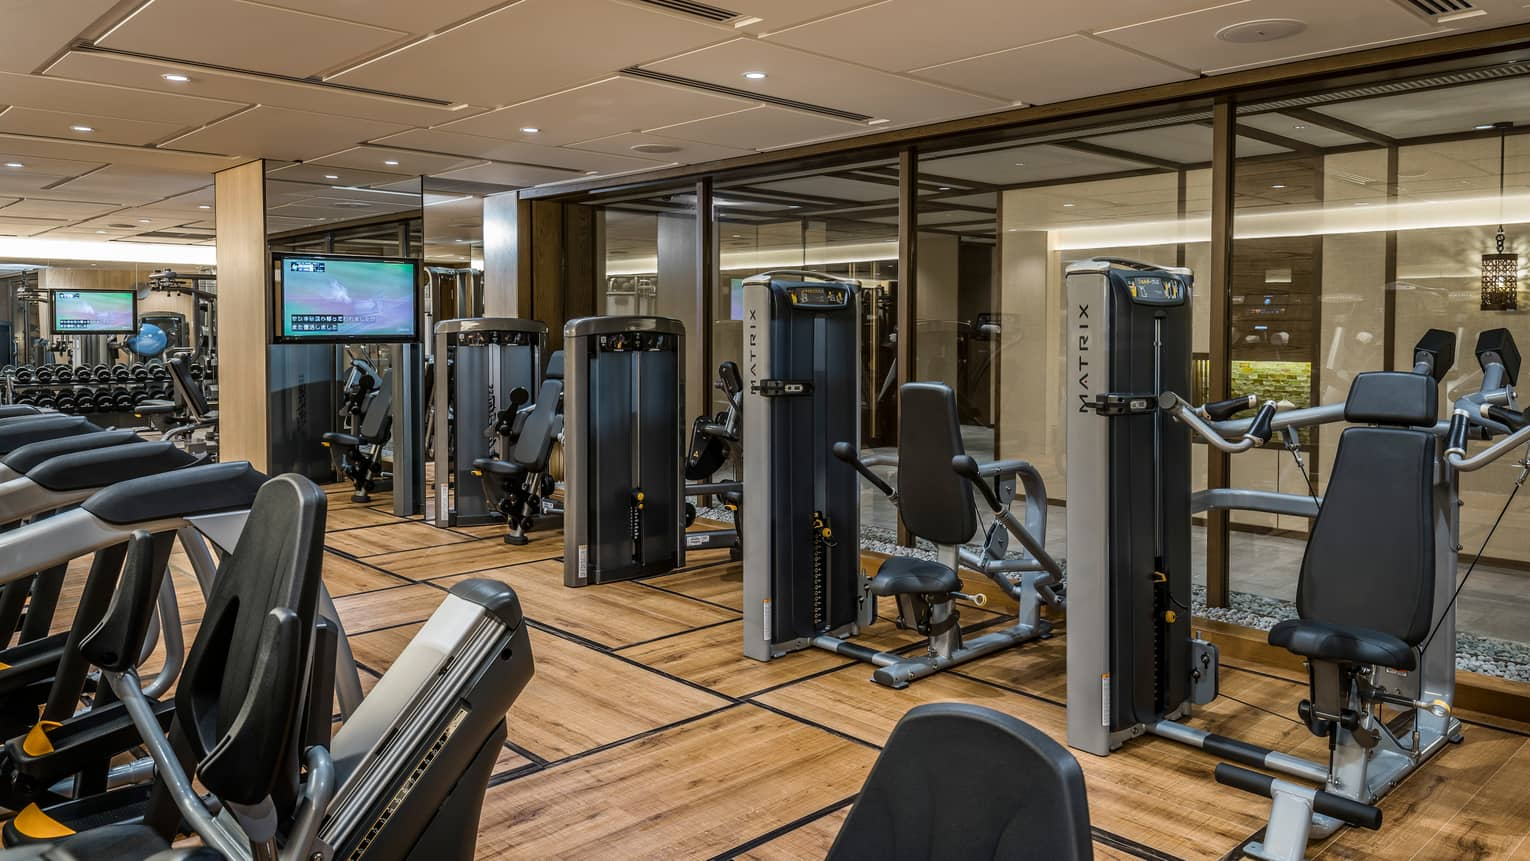 Cardio bikes, weight machines in front of glass wall in Fitness Centre